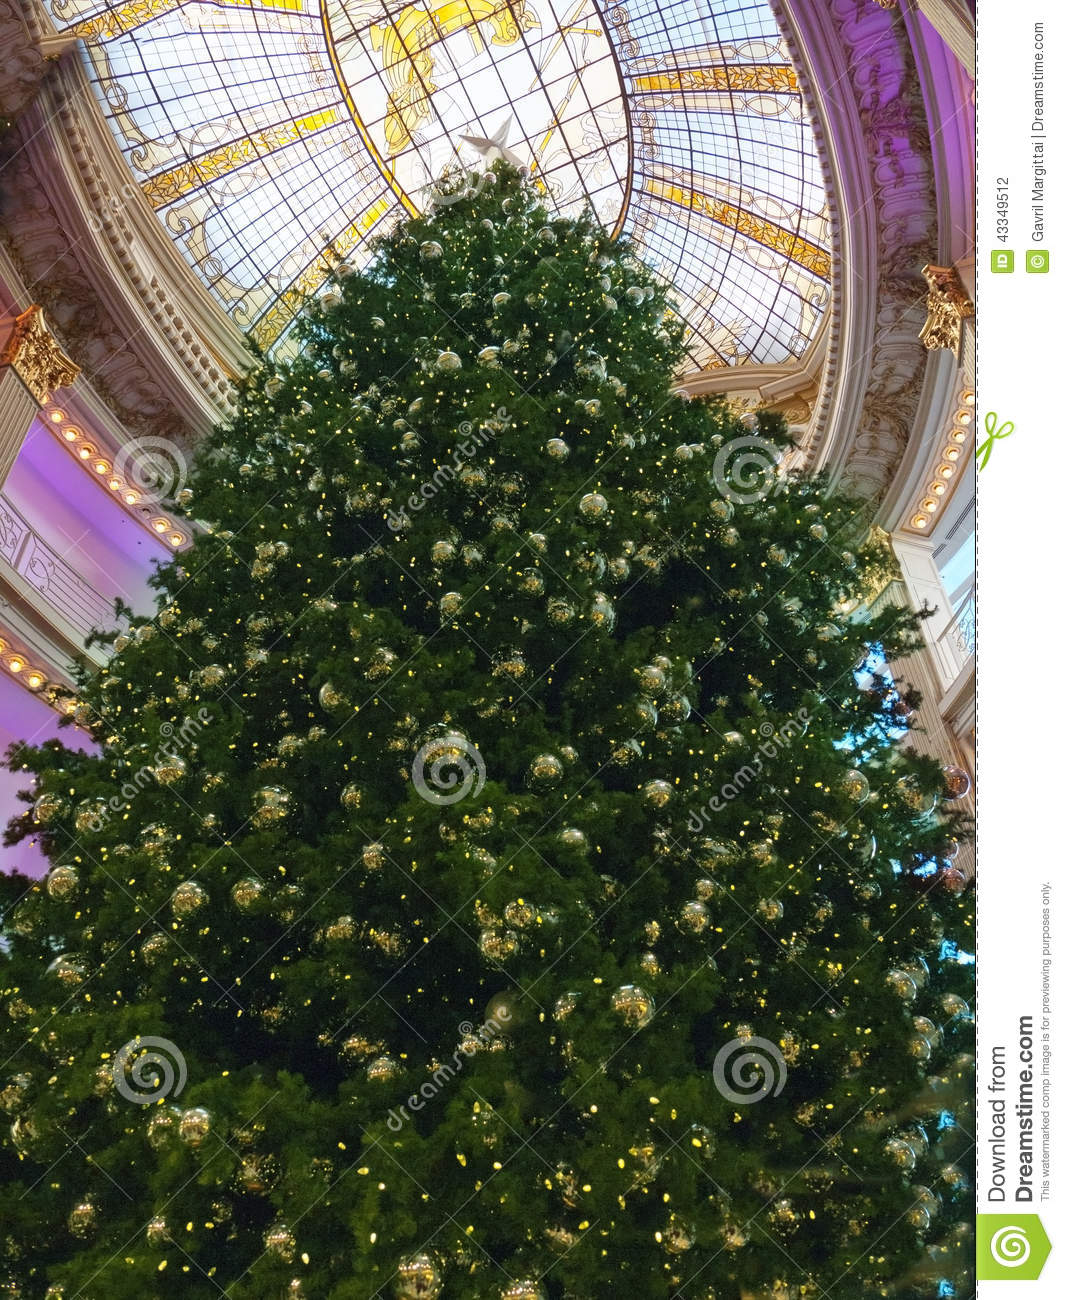 Huge Christmas Tree In A Mall Natural Light Comes From The Glceiling And Combines With The Lights From Below